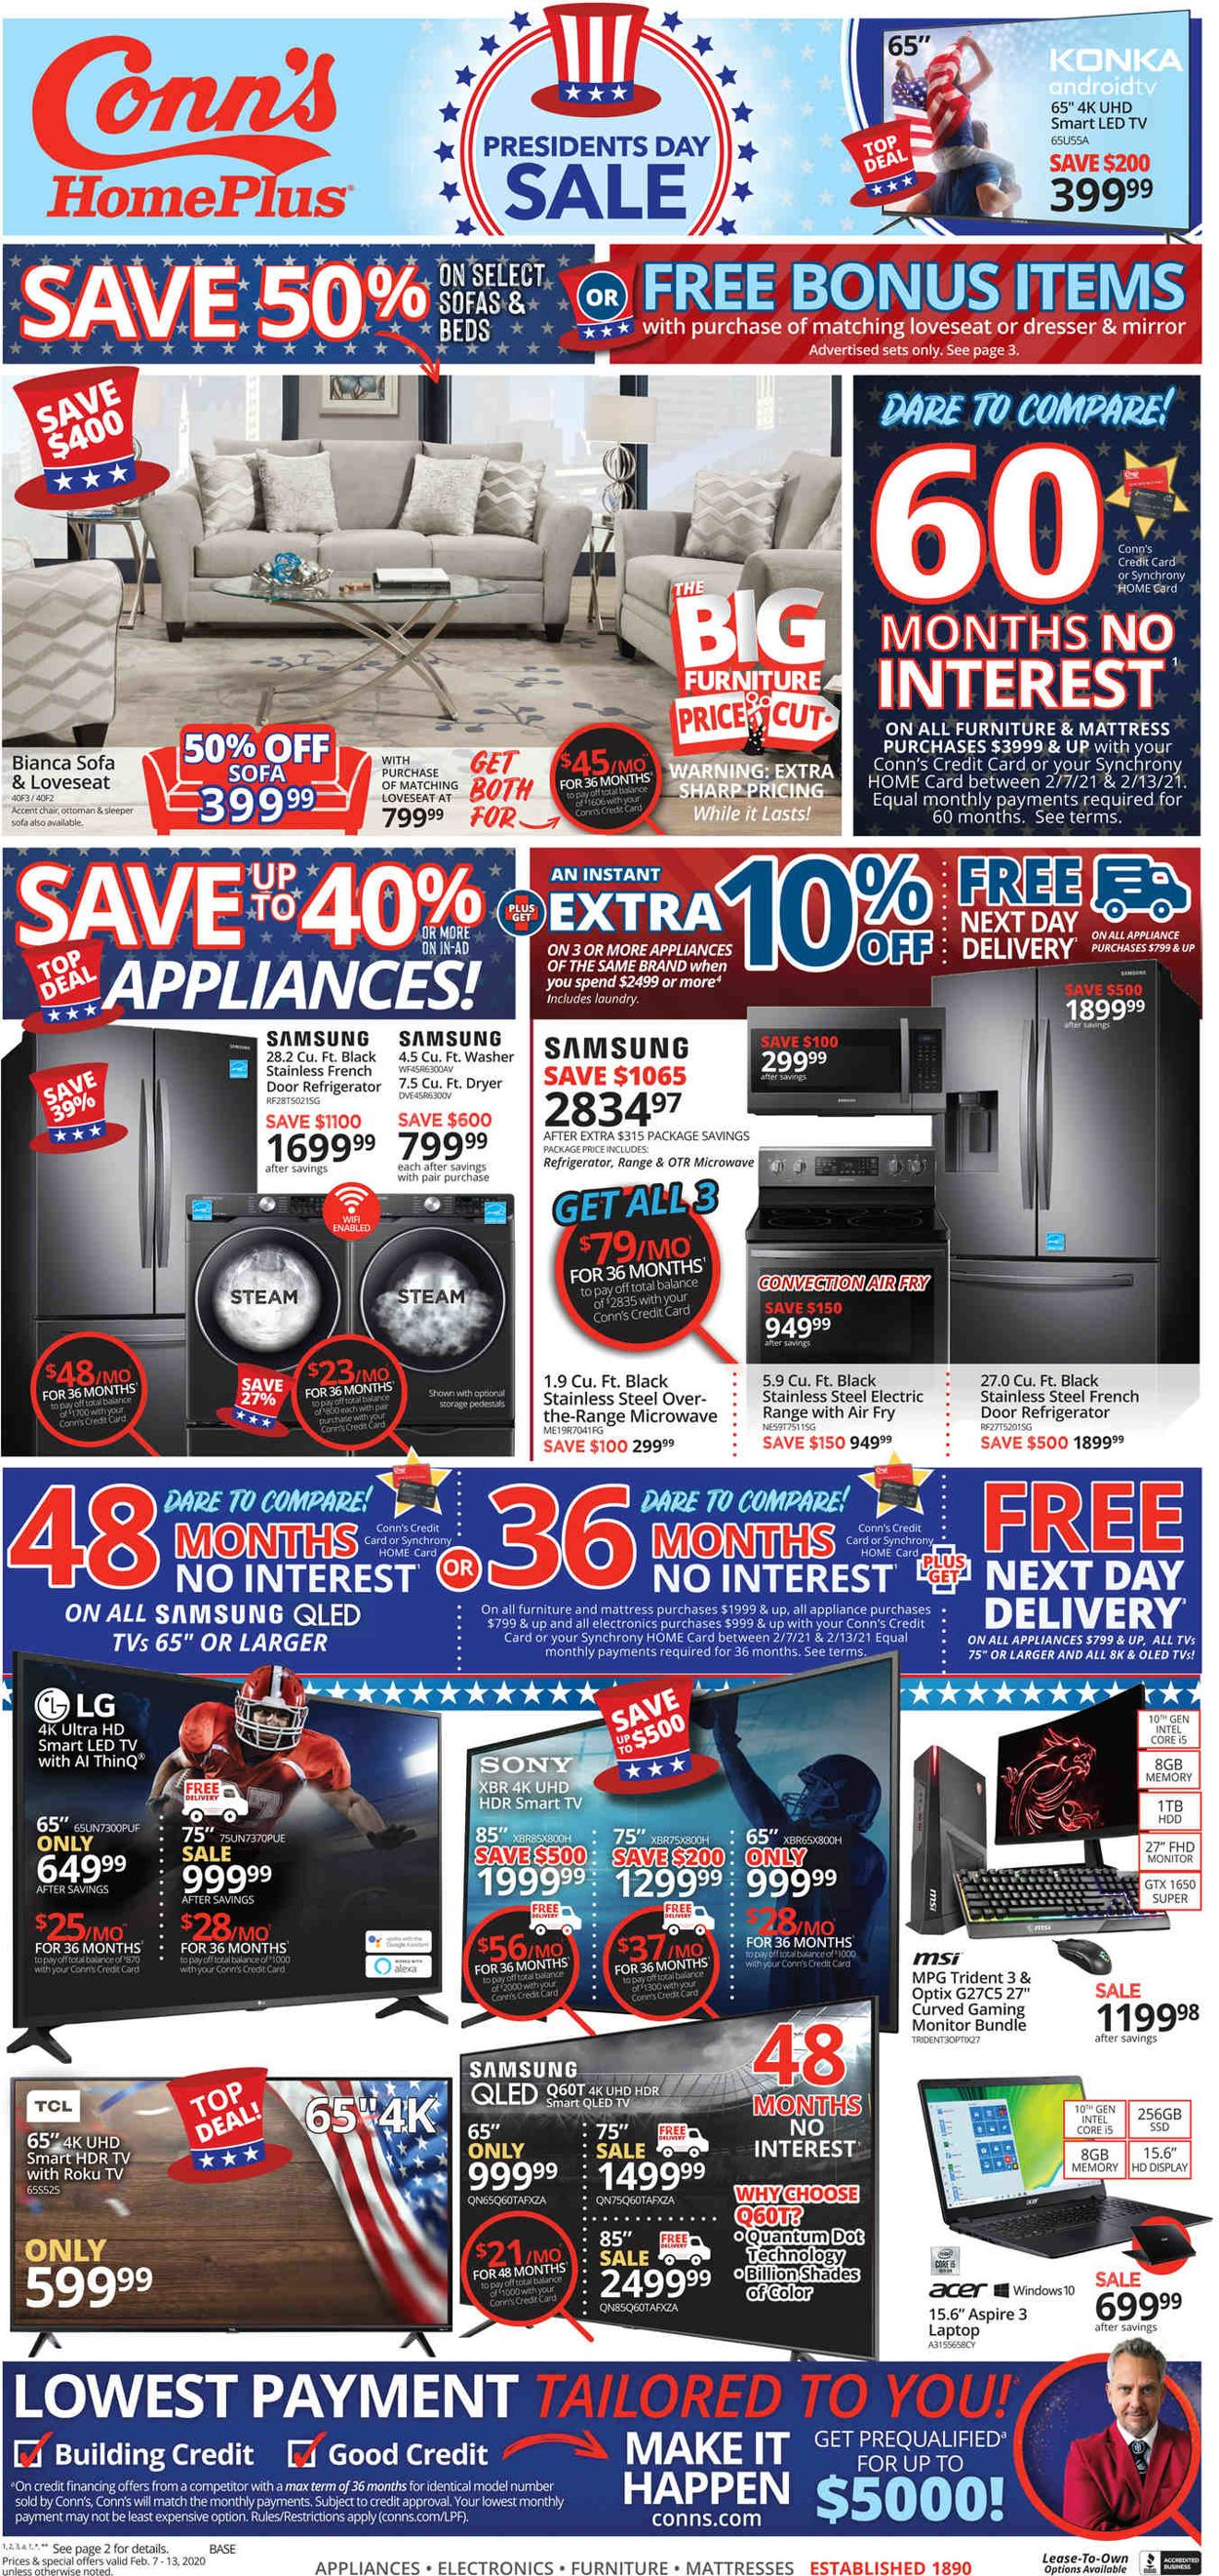 Conn's Home Plus Weekly Ad Circular - valid 02/07-02/13/2021